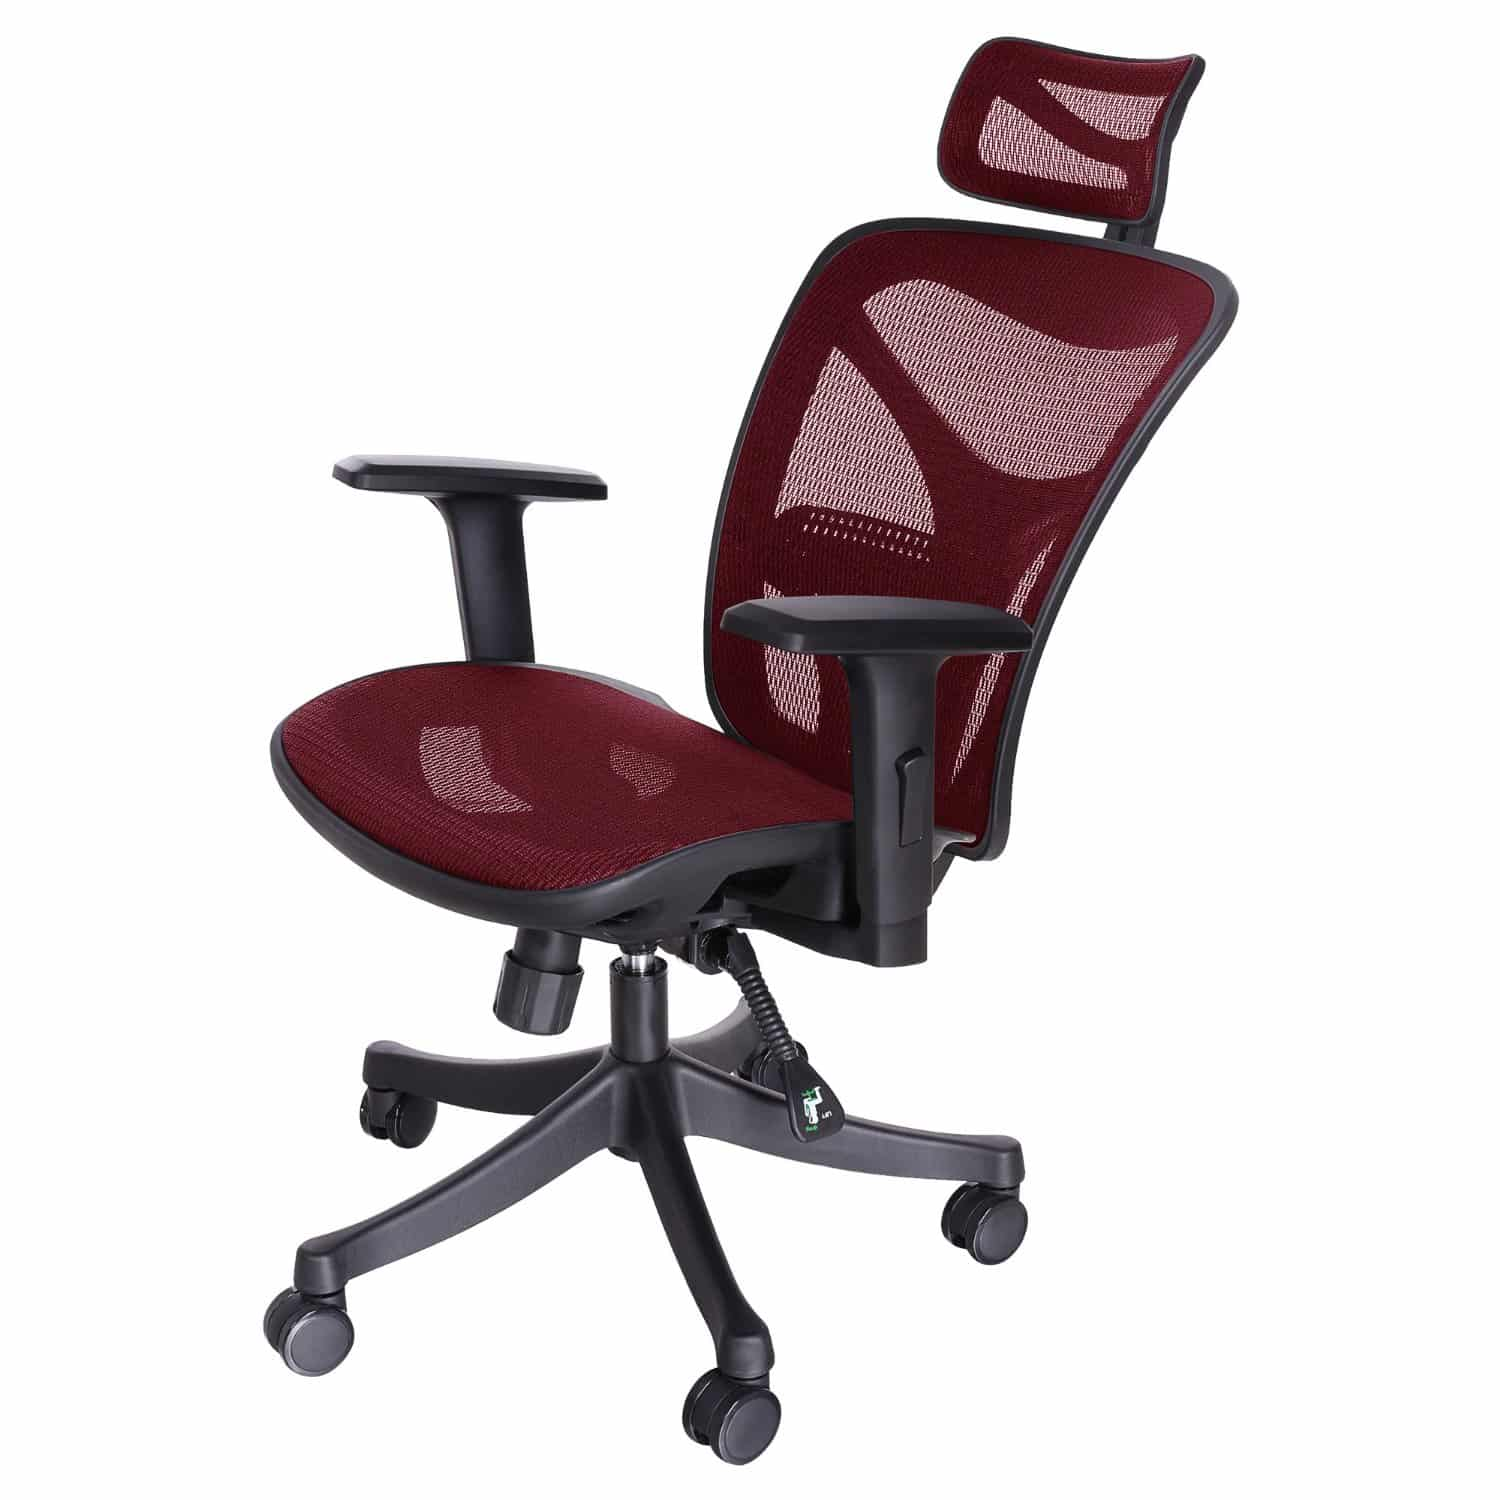 ANCHEER Mount Ergonomic Mesh fice Chair Deals Coupons & Reviews